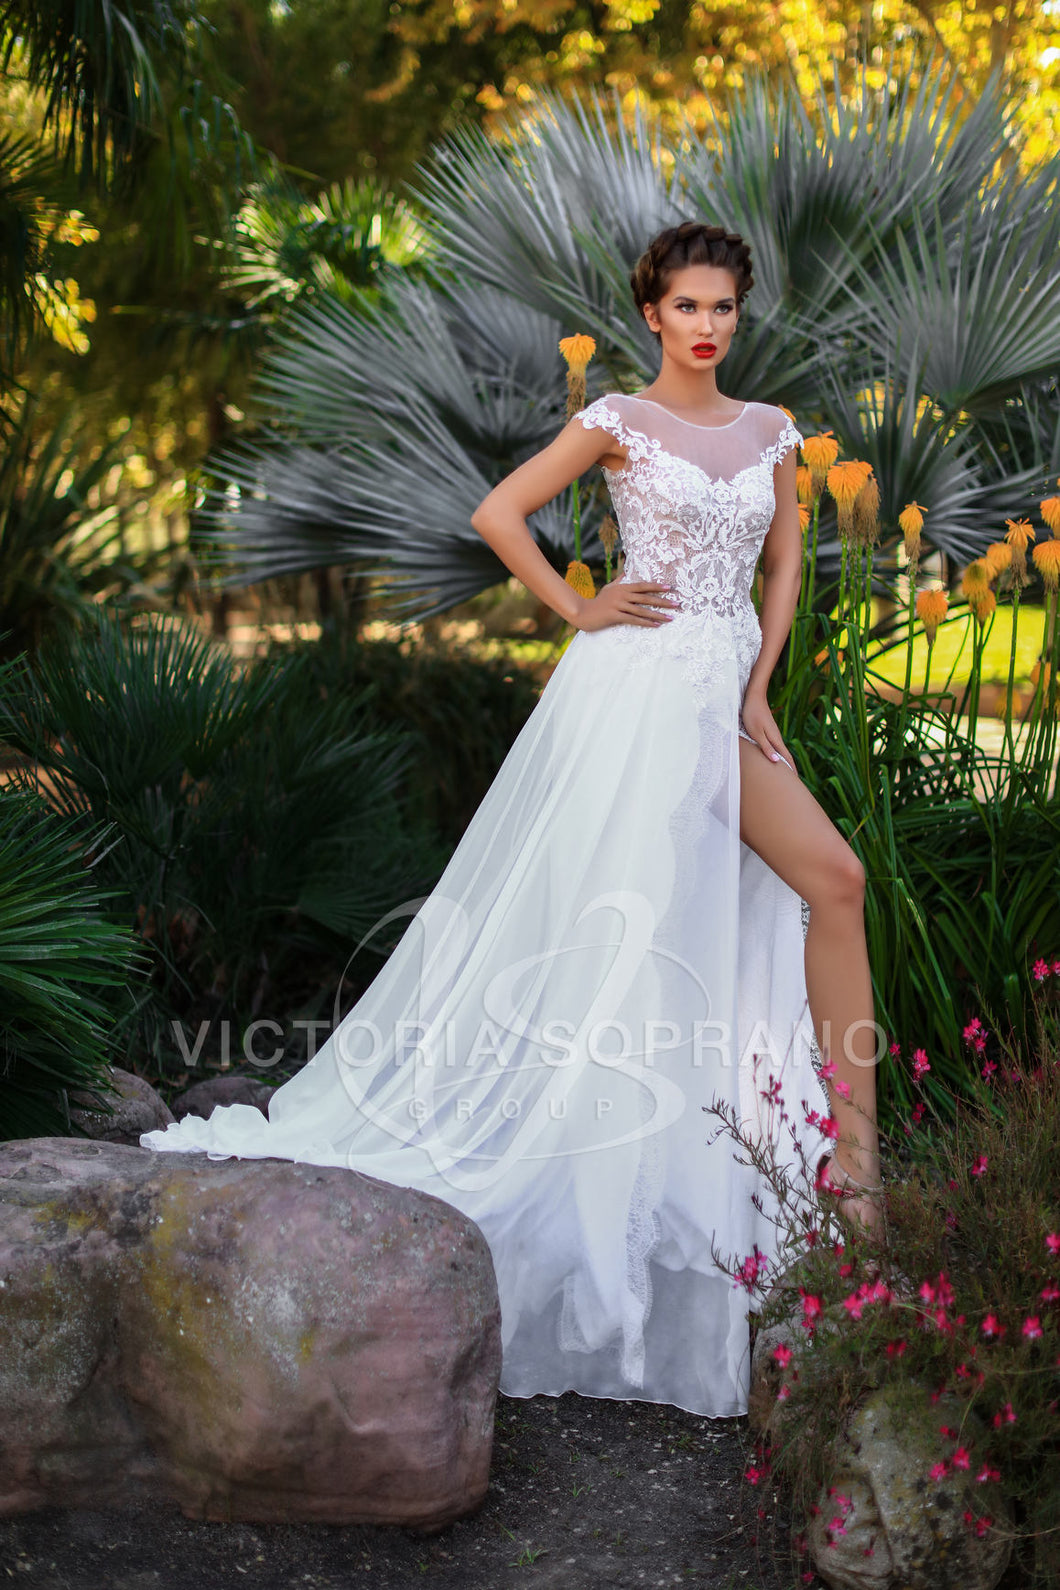 The One Collection 'Celine' Victoria Soprano RTW 16318-316 Ready To Wear European Bridal Wedding Gown Designer Philippines